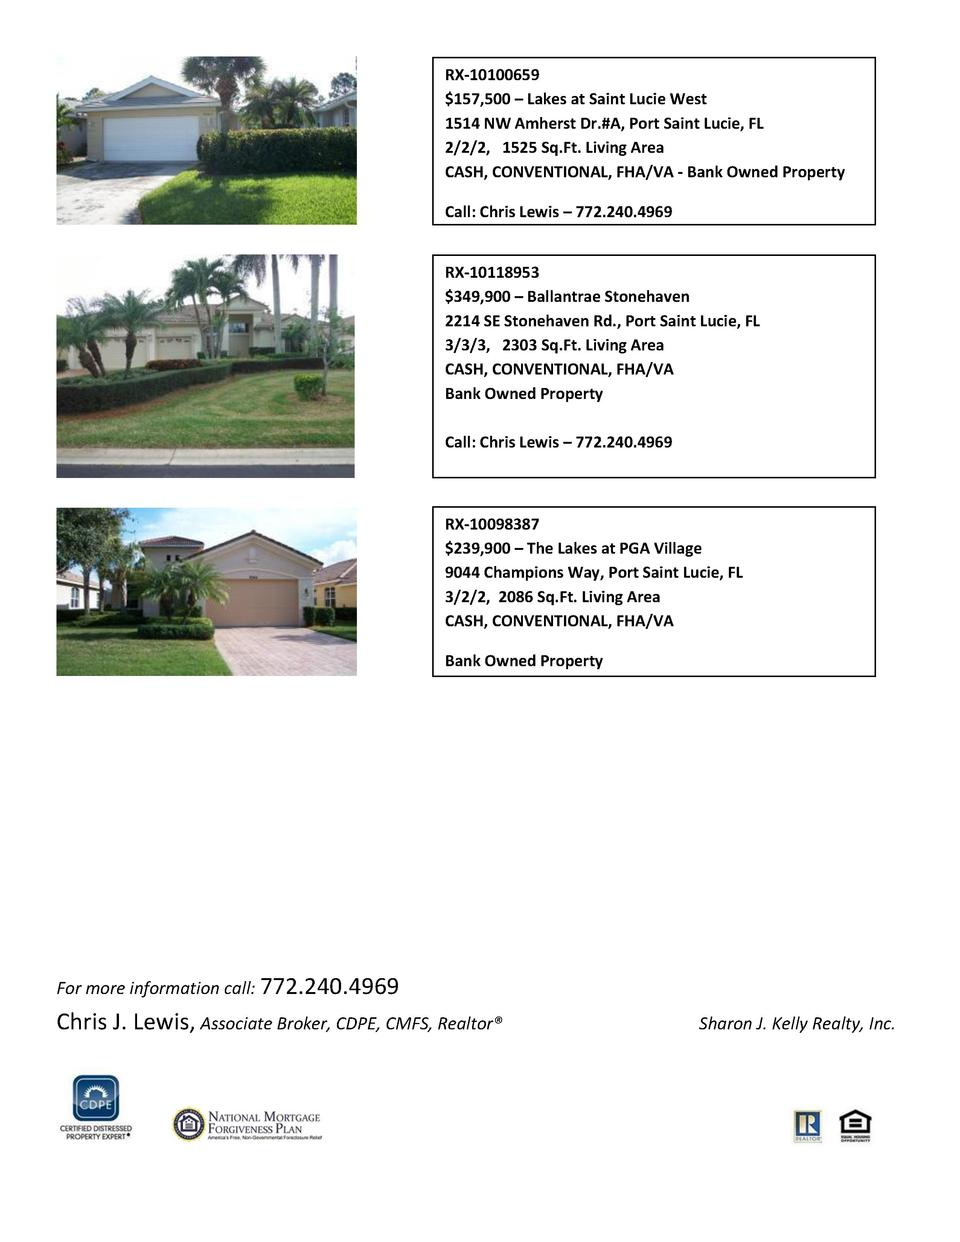 RX-10100659  157,500     Lakes at Saint Lucie West 1514 NW Amherst Dr. A, Port Saint Lucie, FL 2 2 2, 1525 Sq.Ft. Living A...